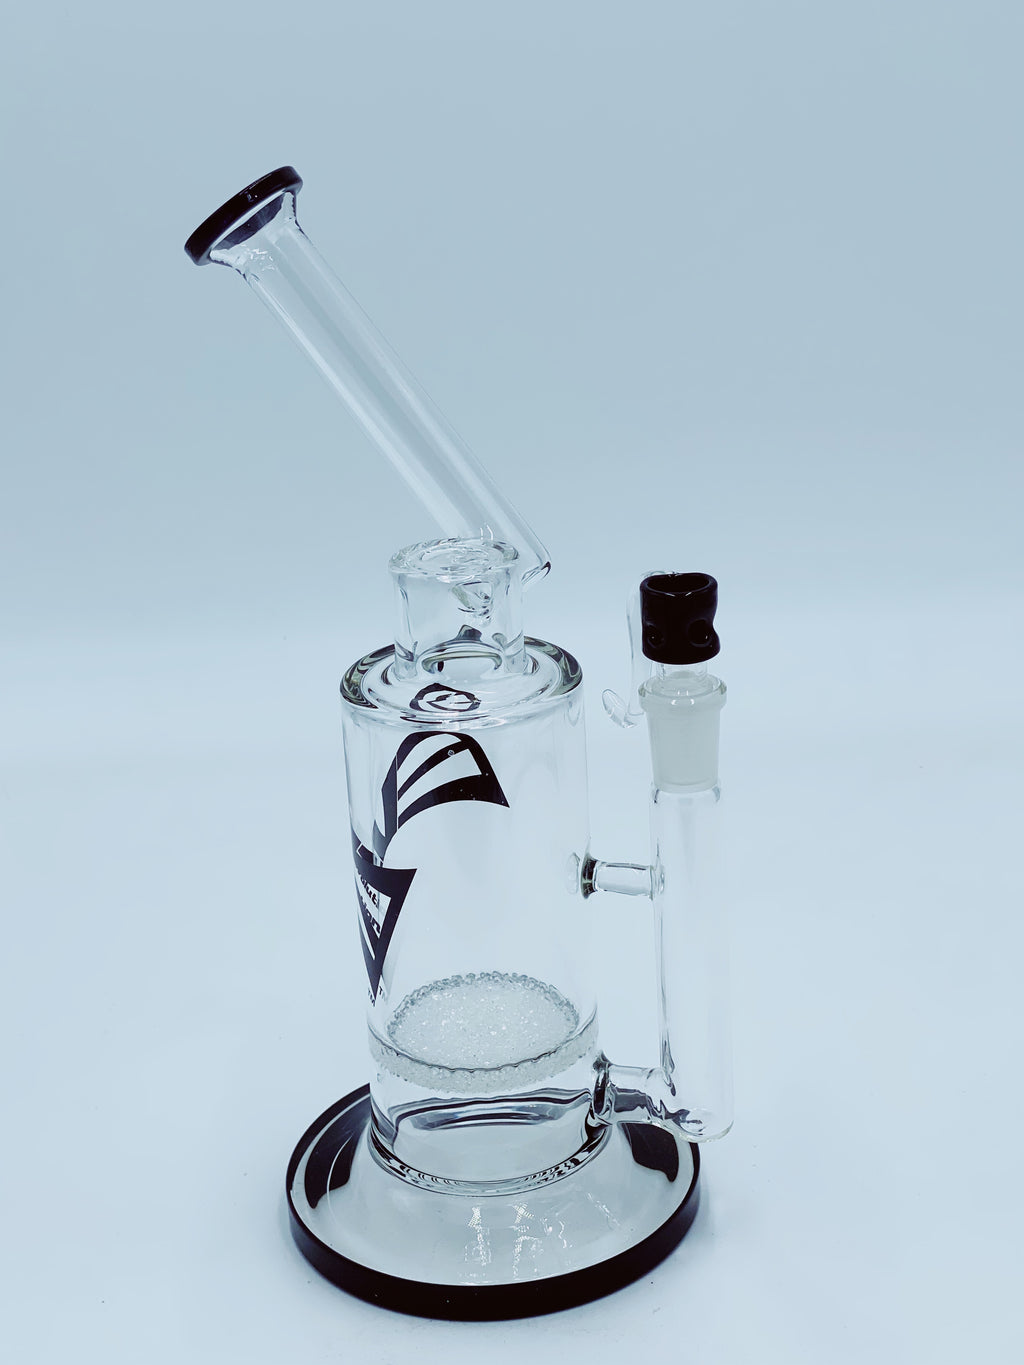 Evolution Glass FRIT DISC PERCOLATOR - Smoke Country - Land of the artistic glass blown bongs